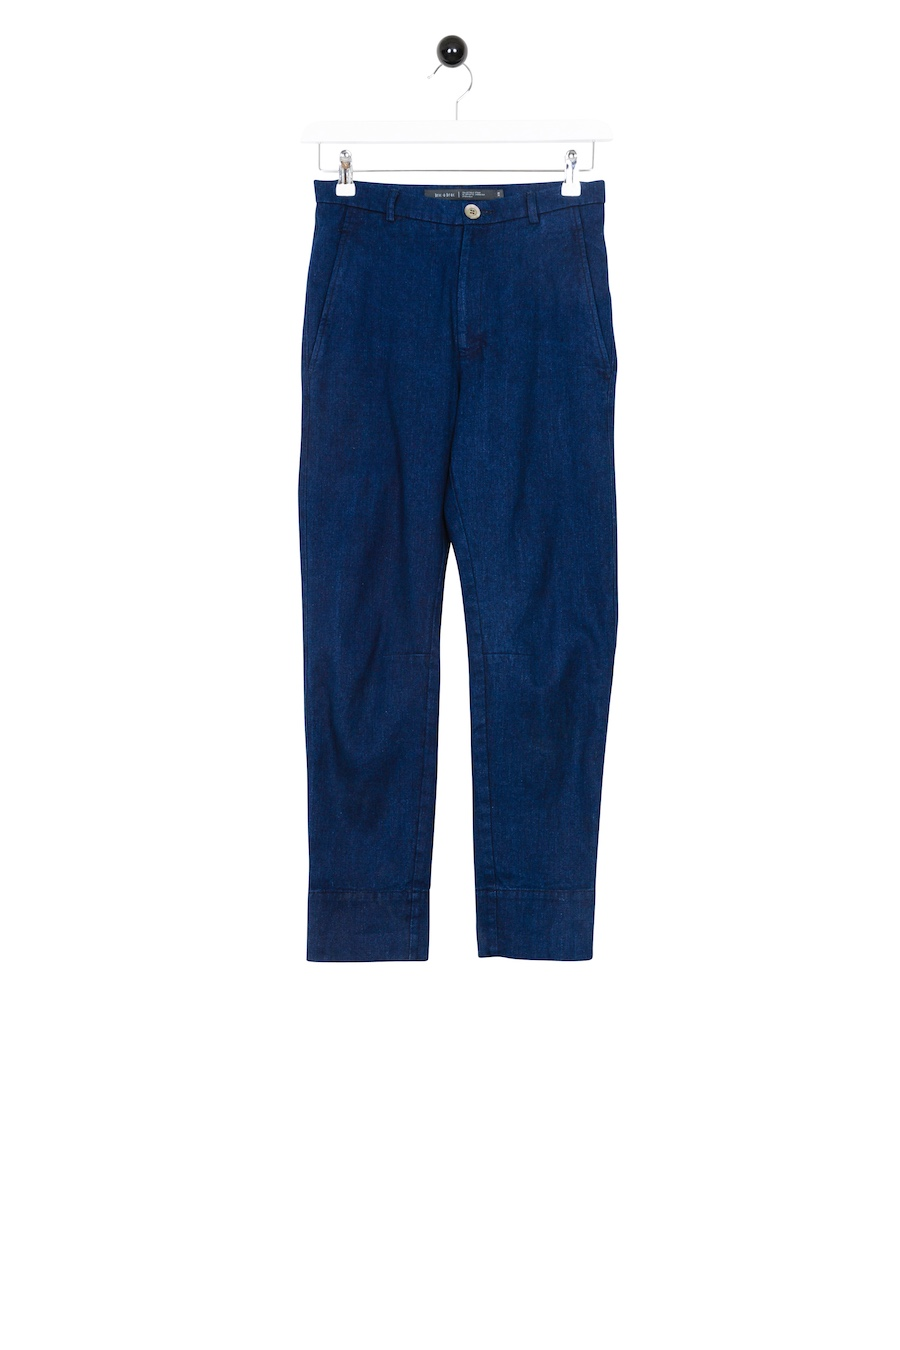 Kobolt Trousers Cropped